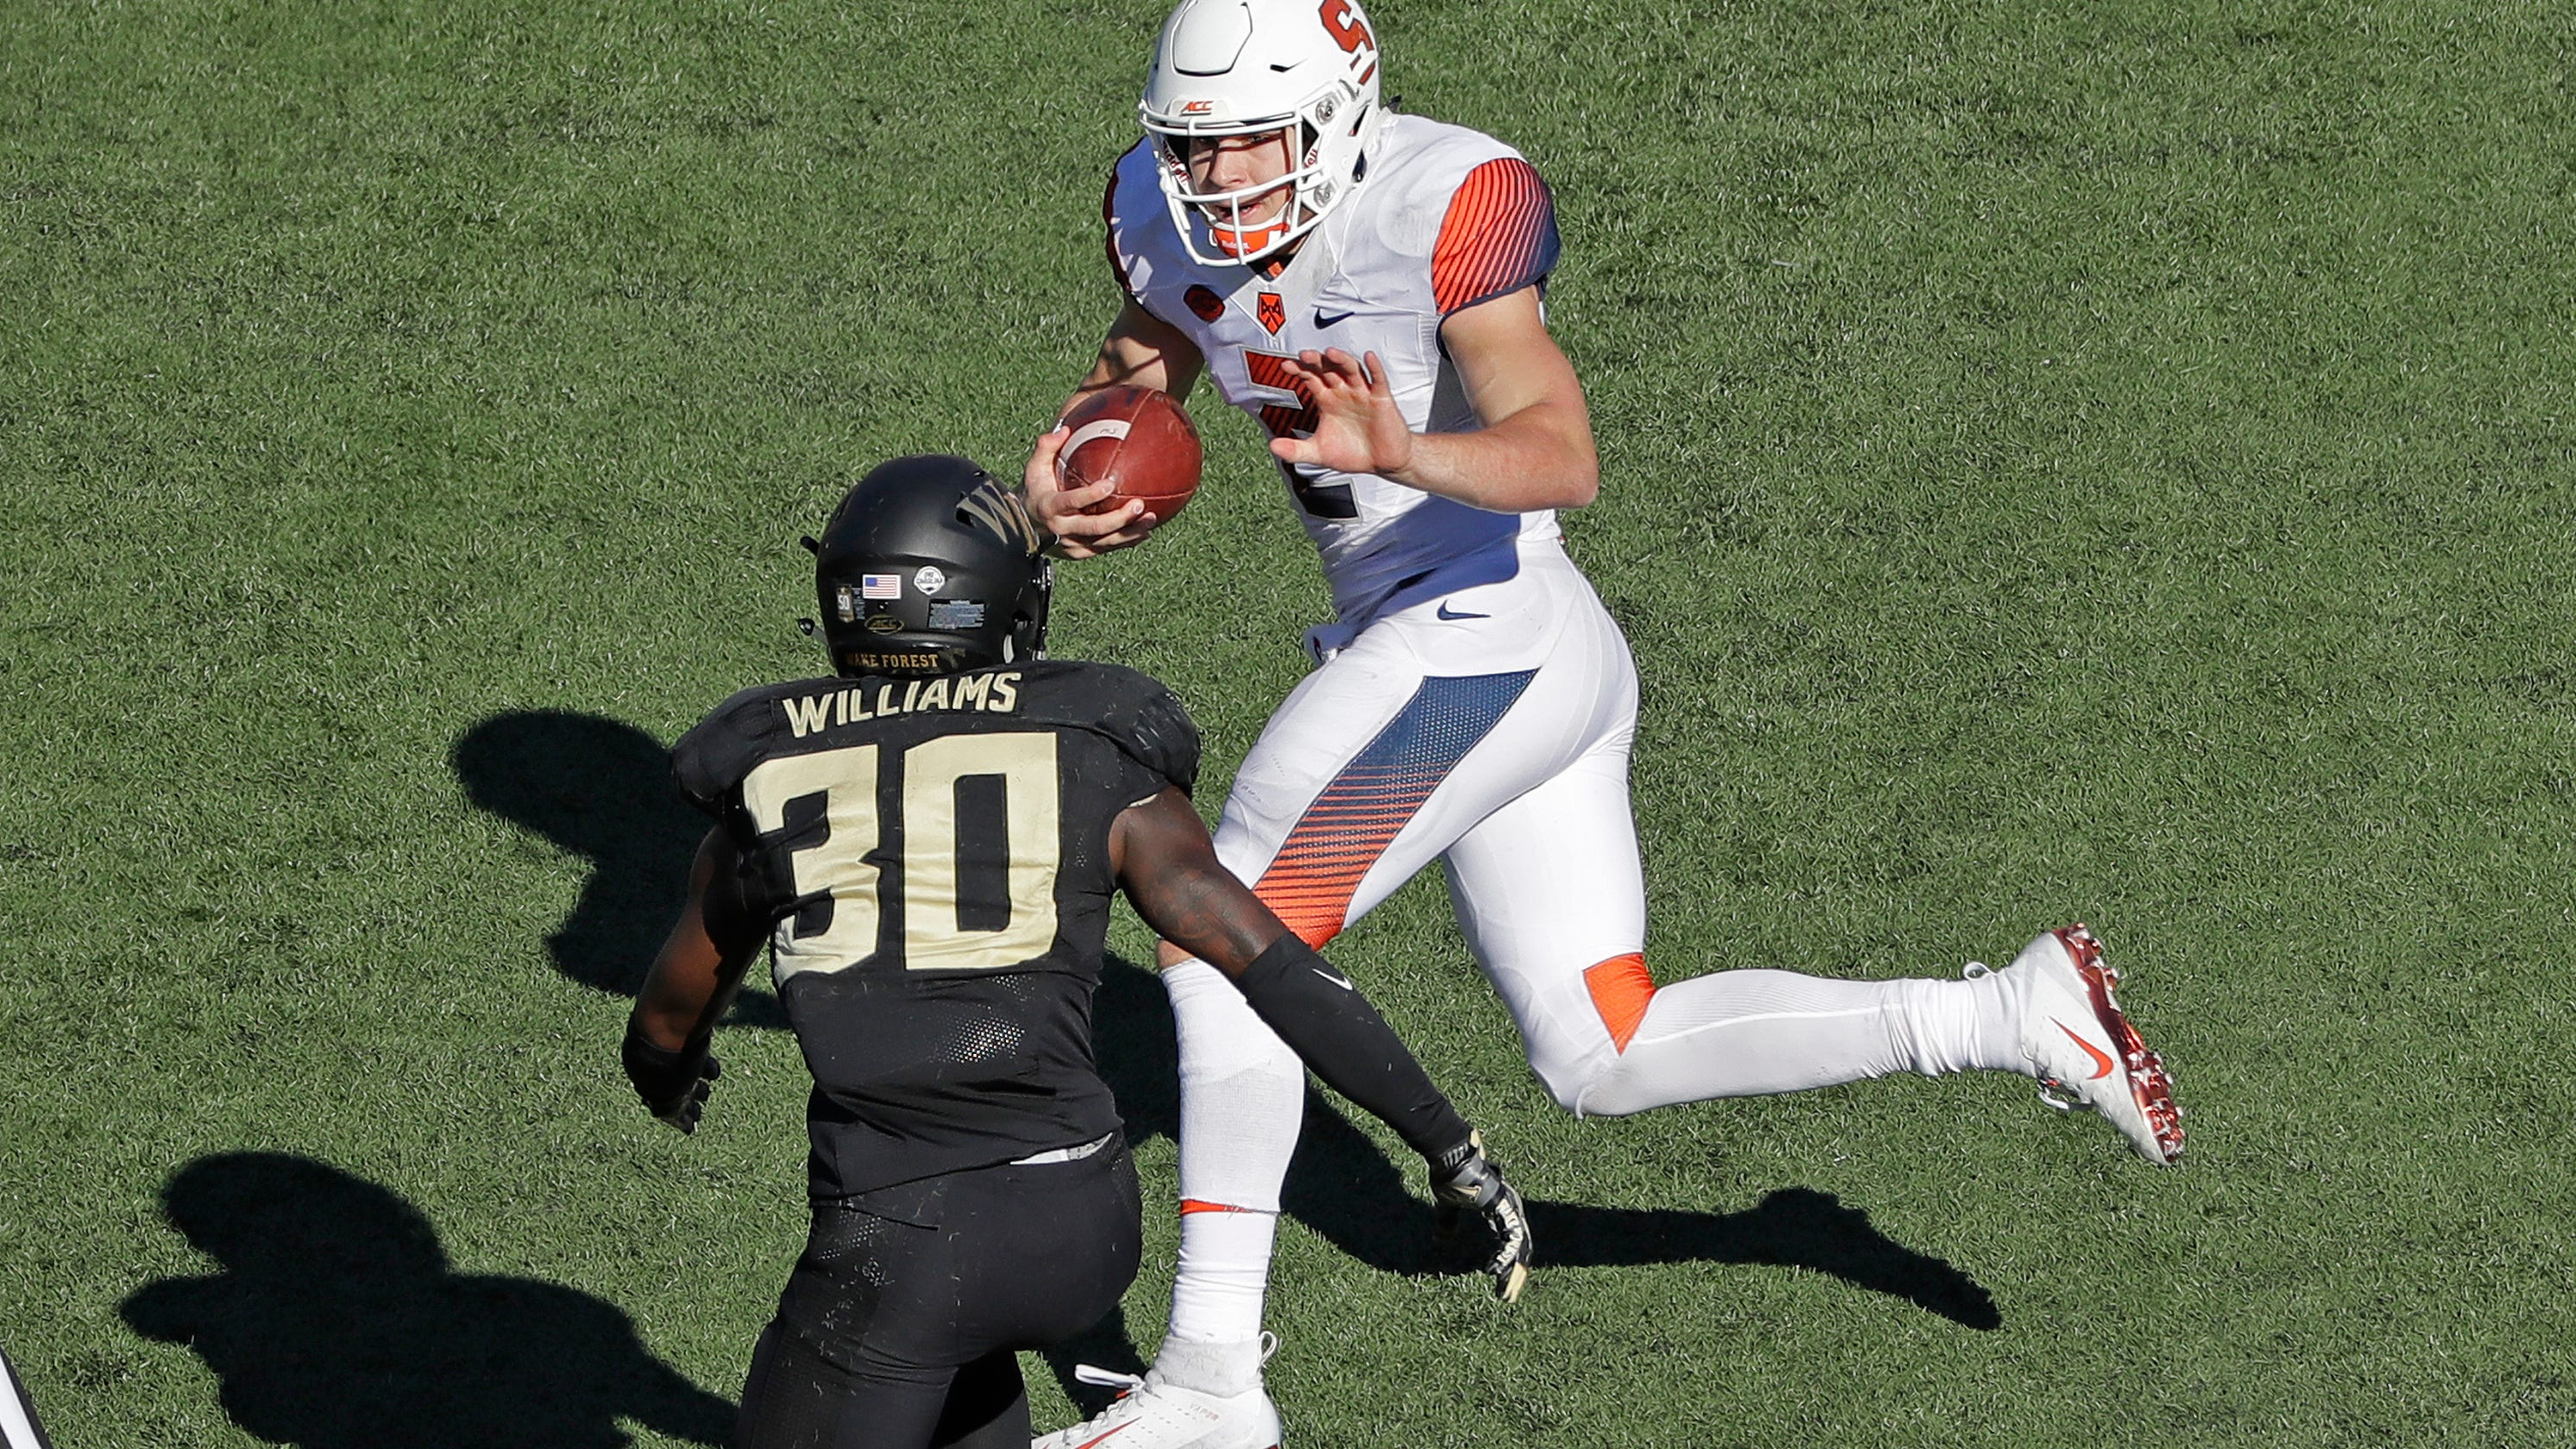 fa8d495f7 Syracuse football  Eric Dungey leads Orange to win over Wake Forest